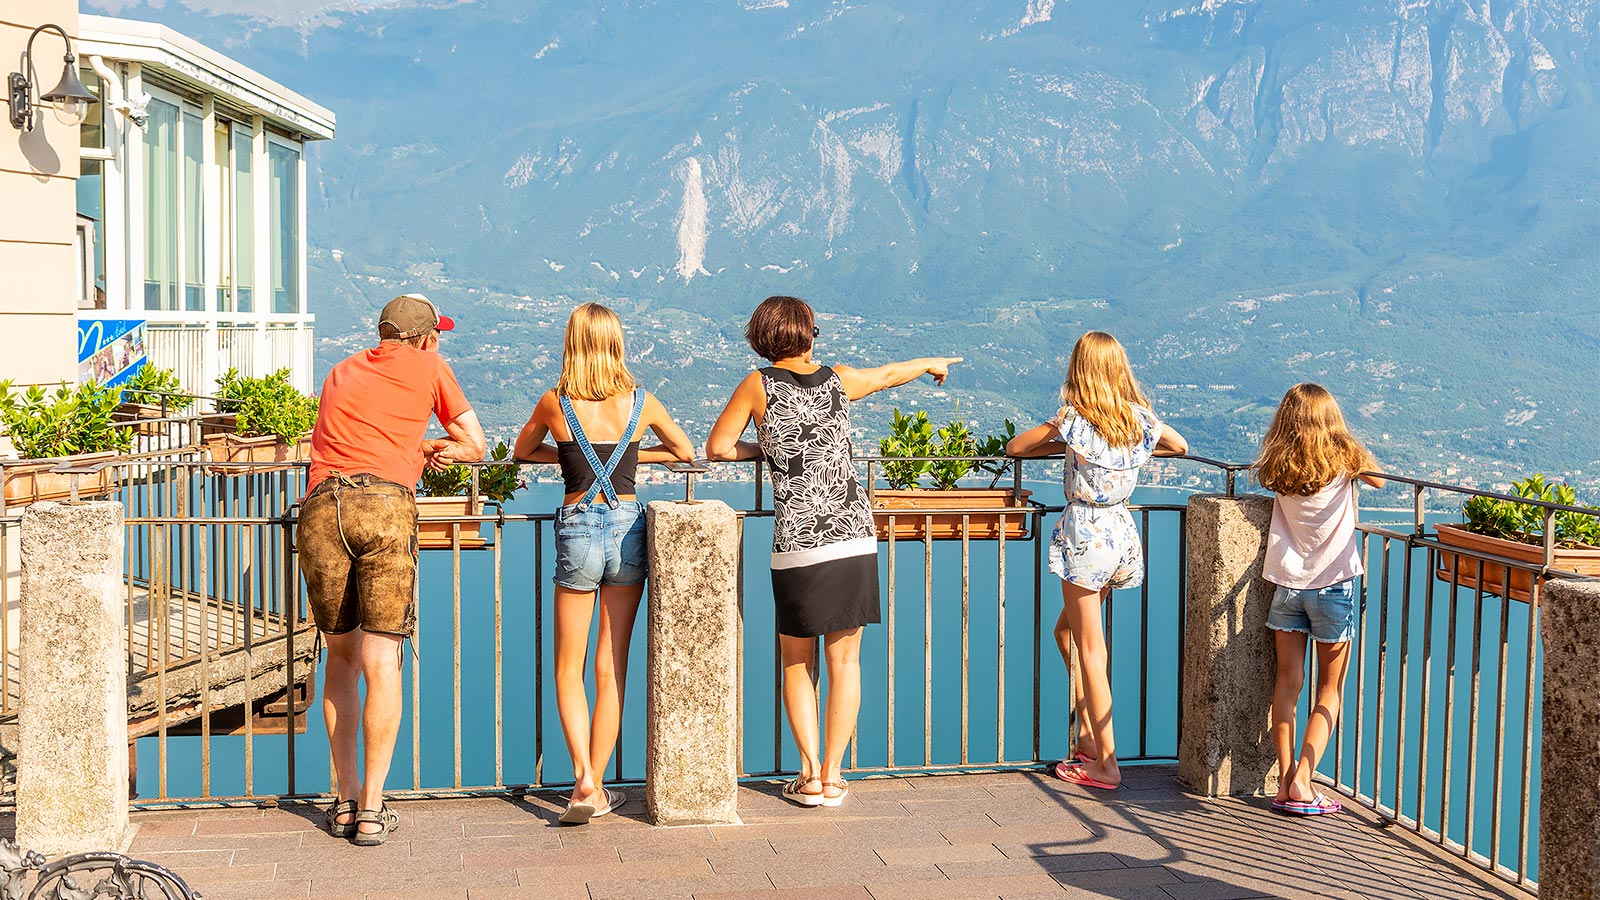 Family adminirng the view of Lake Garda